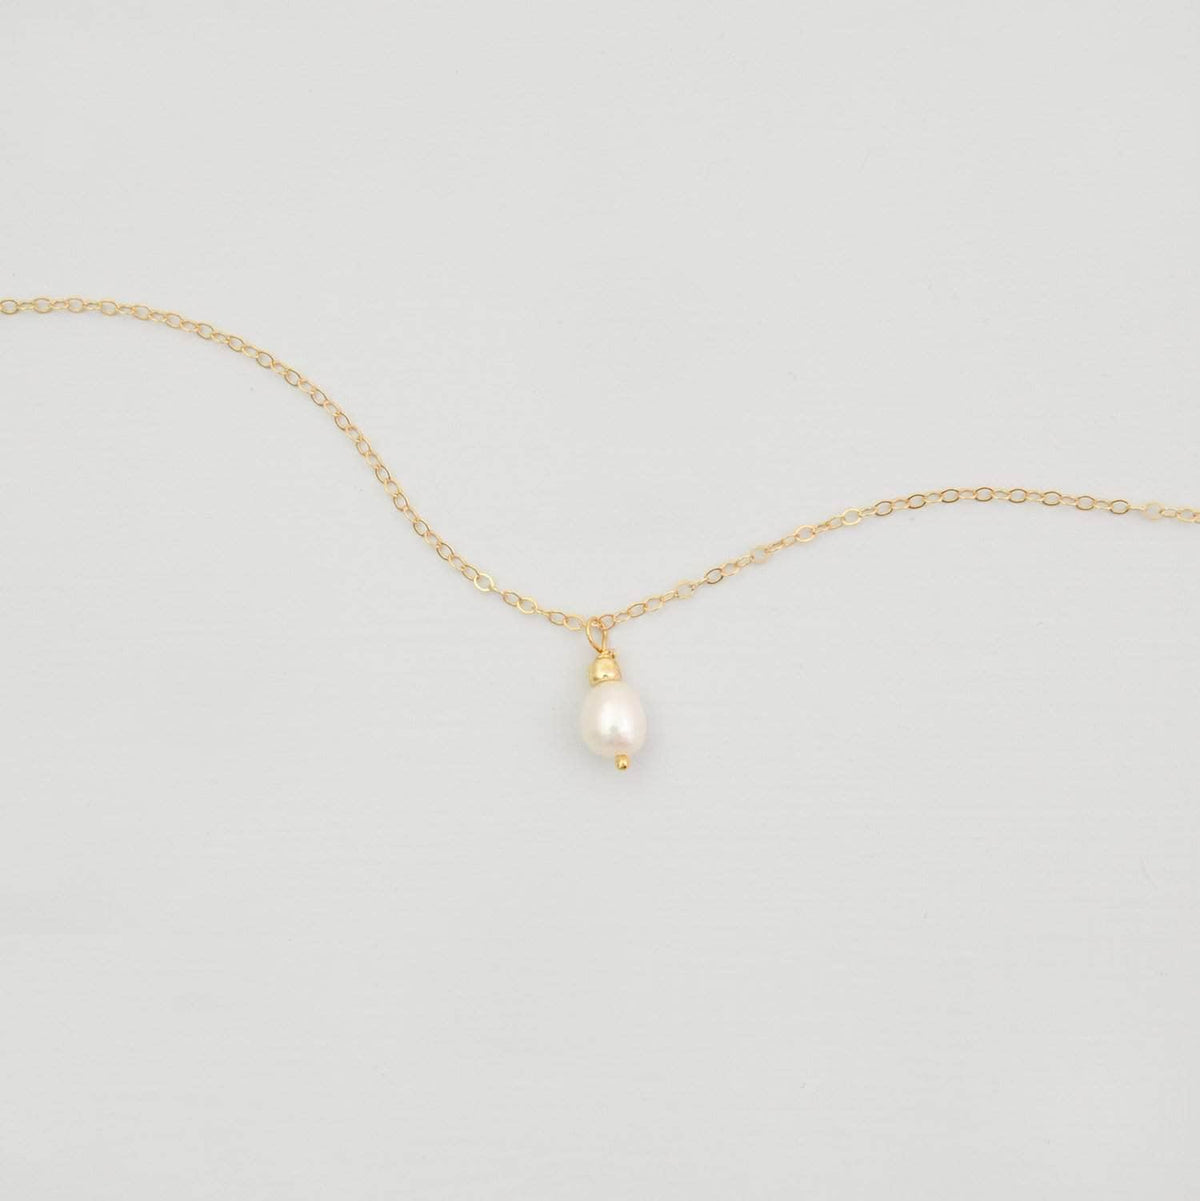 14k gold fill close up freshwater pearl